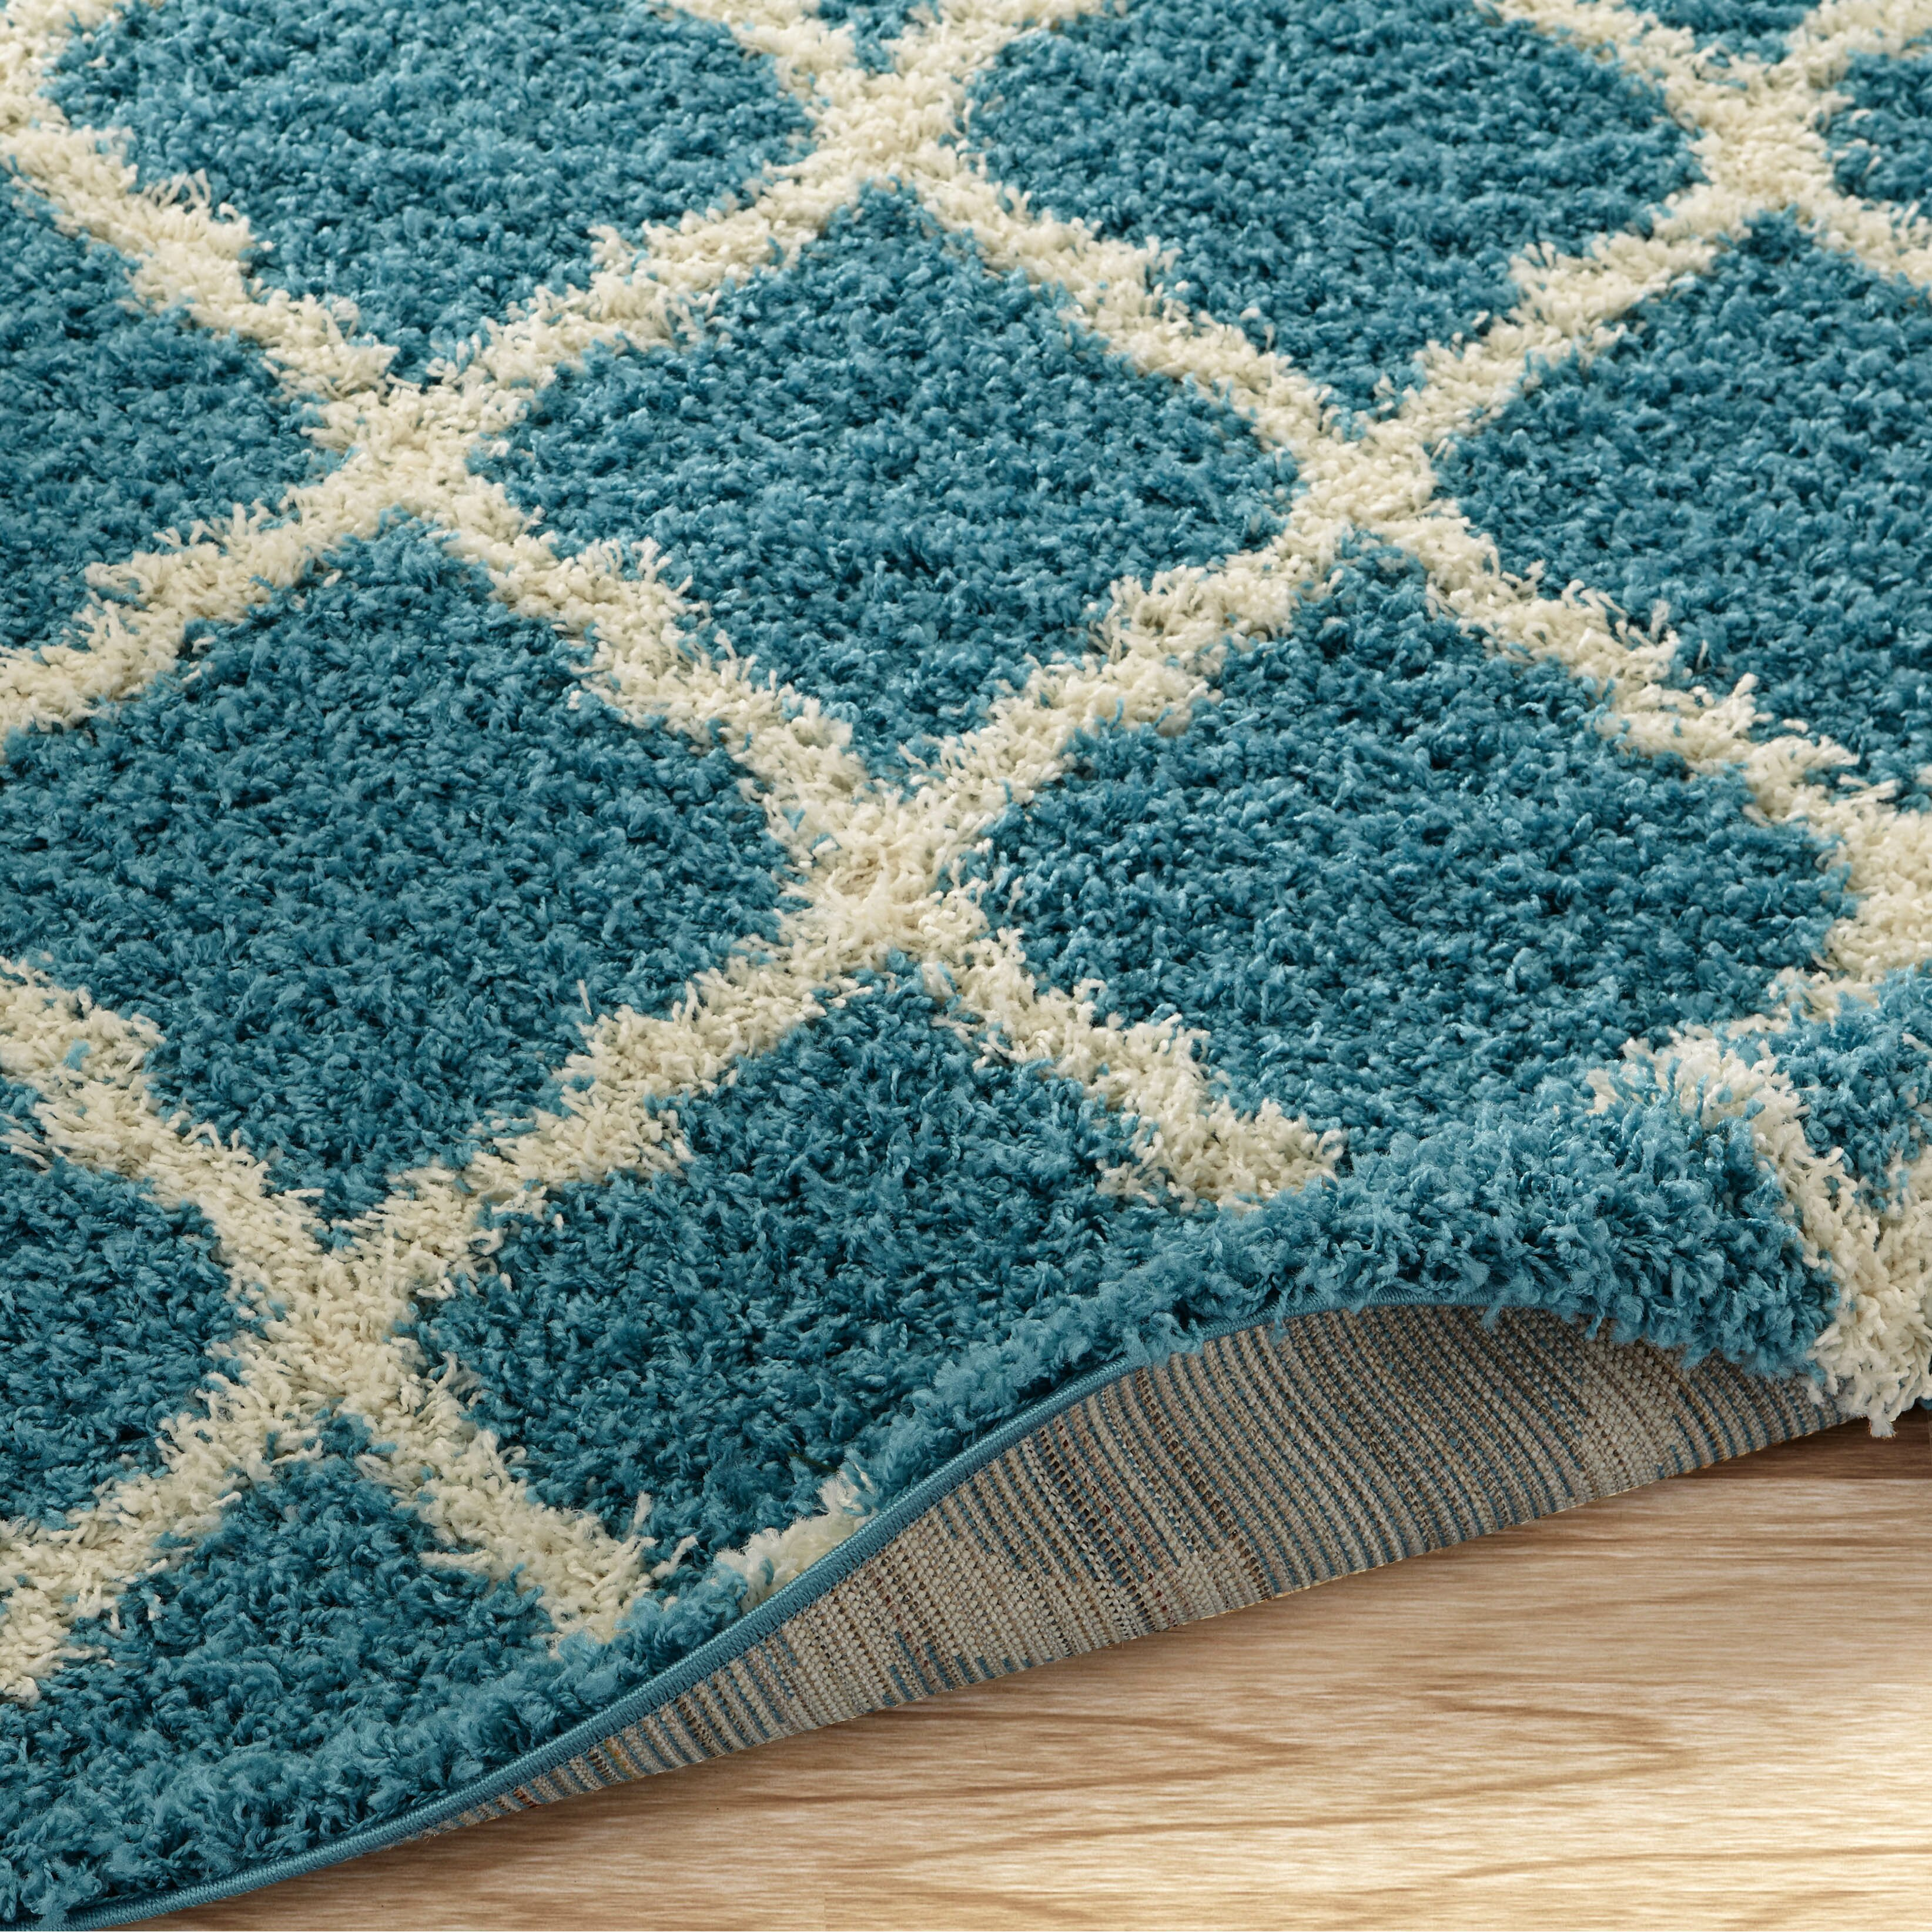 World Rug Gallery Florida Turquoise Area Rug Reviews: Ultimate Moroccan Trellis Soft Turquoise Shaggy Area Rug